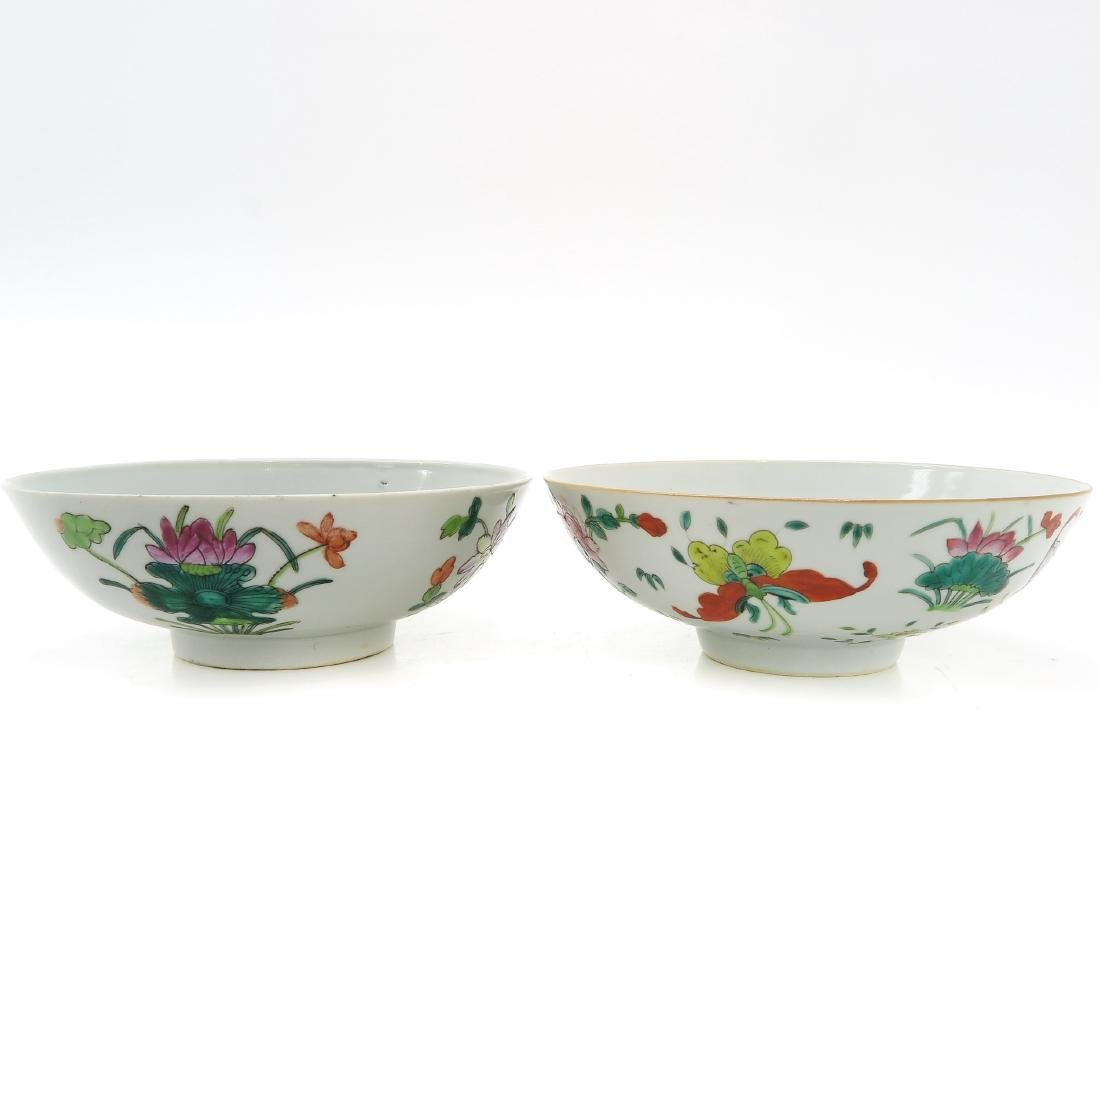 Lot of 2 Bowls - 3